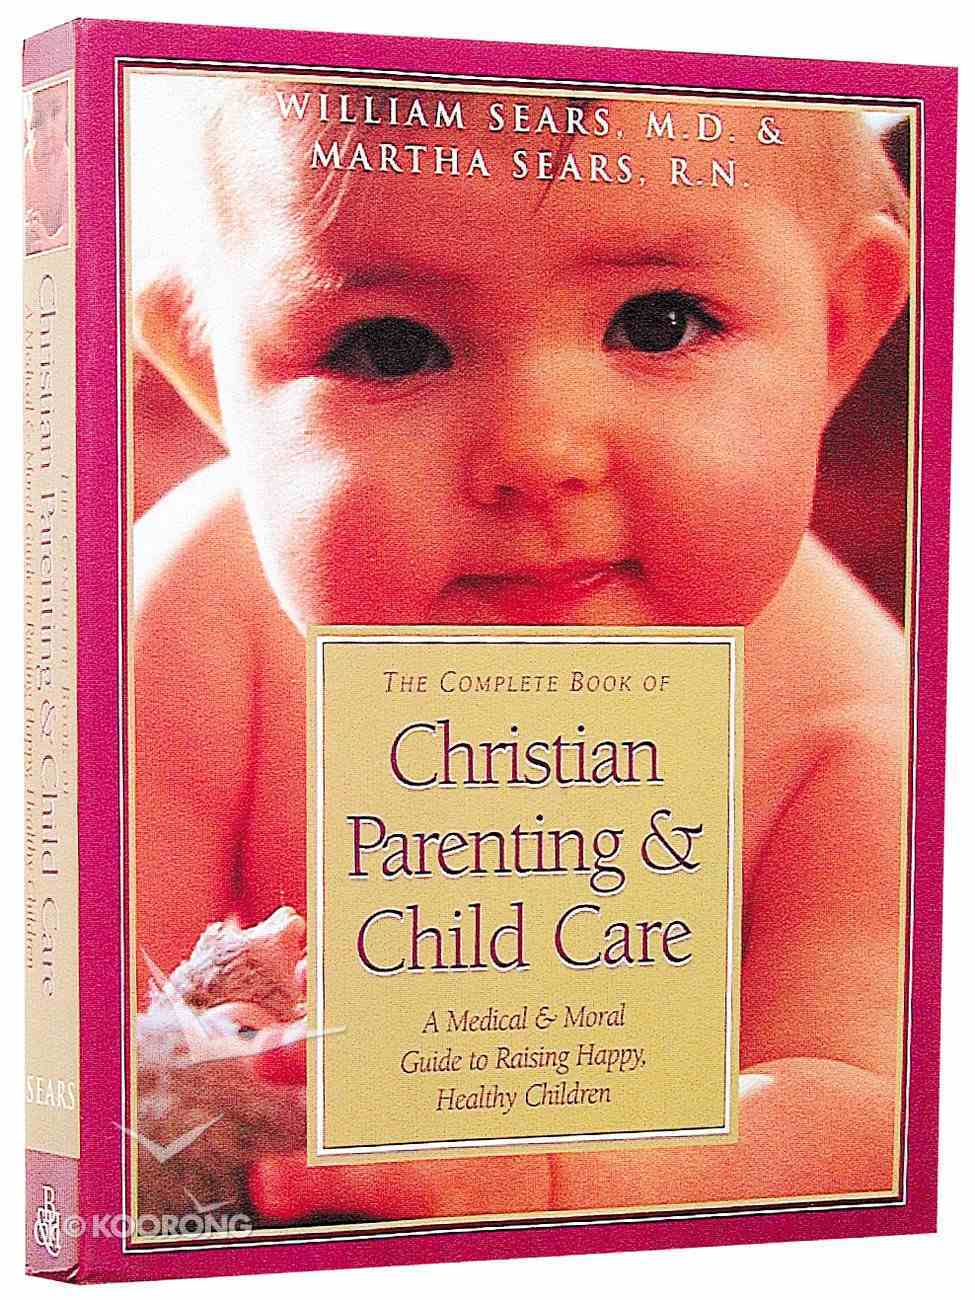 The Complete Book of Christian Parenting and Child Care Paperback